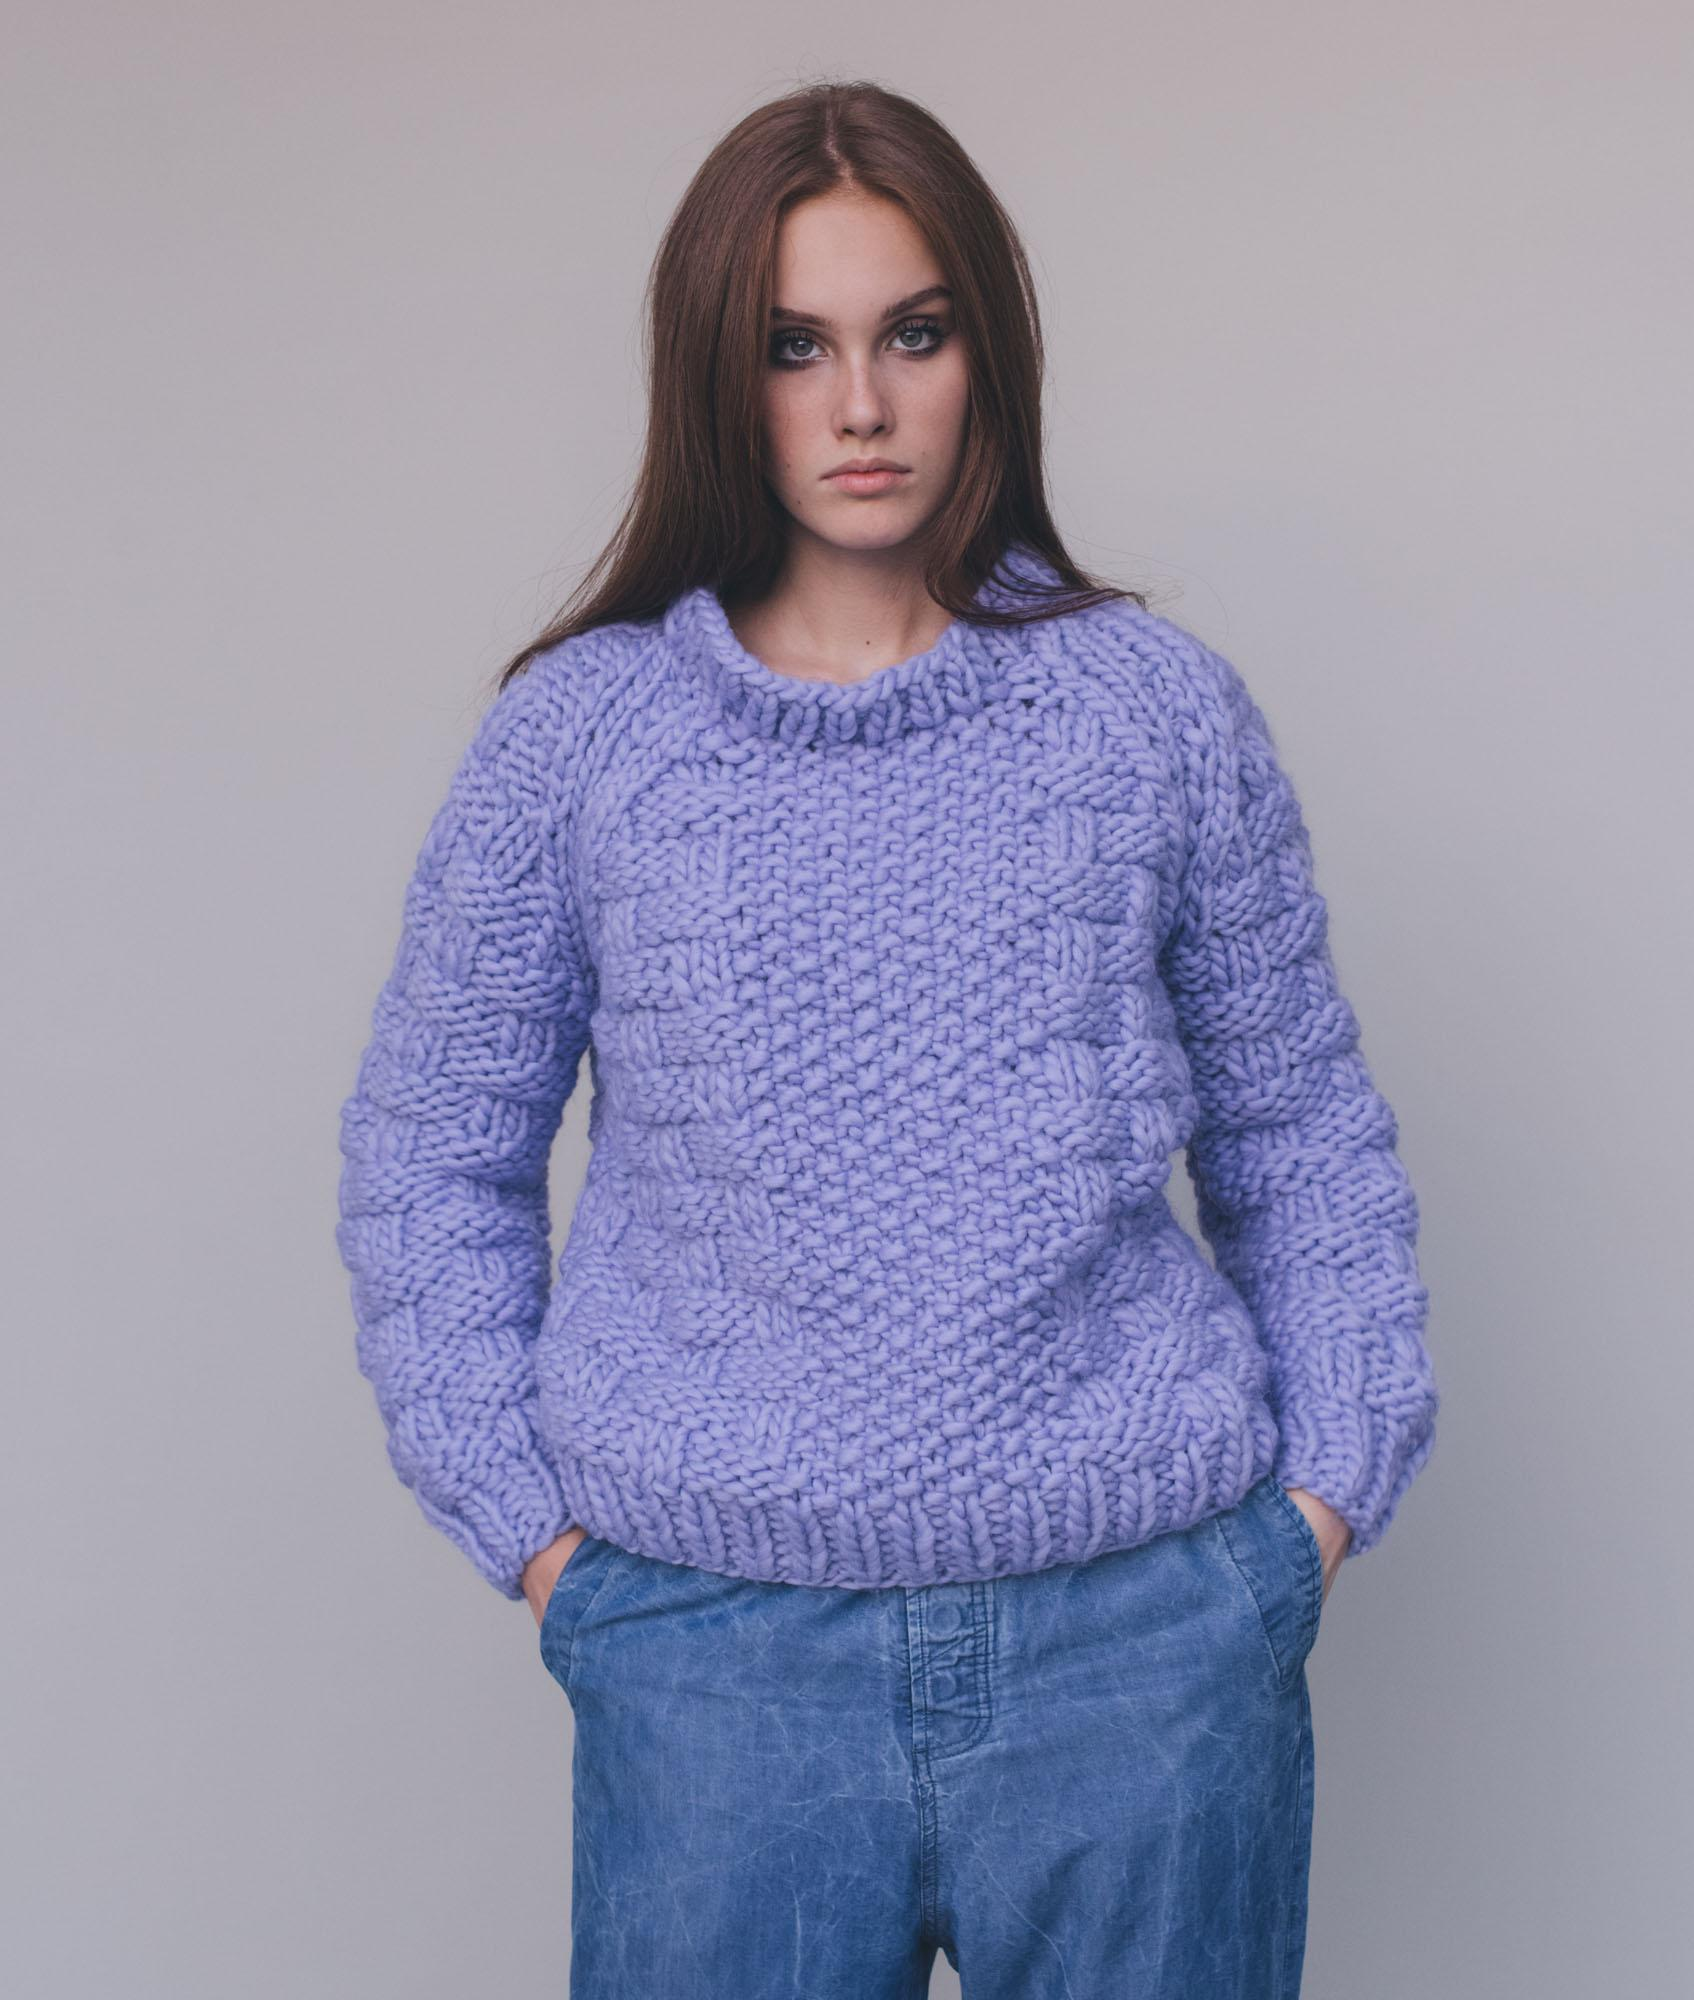 Chunky Knits Collection  - Sweaters and Tops - Alyon Pull - 1